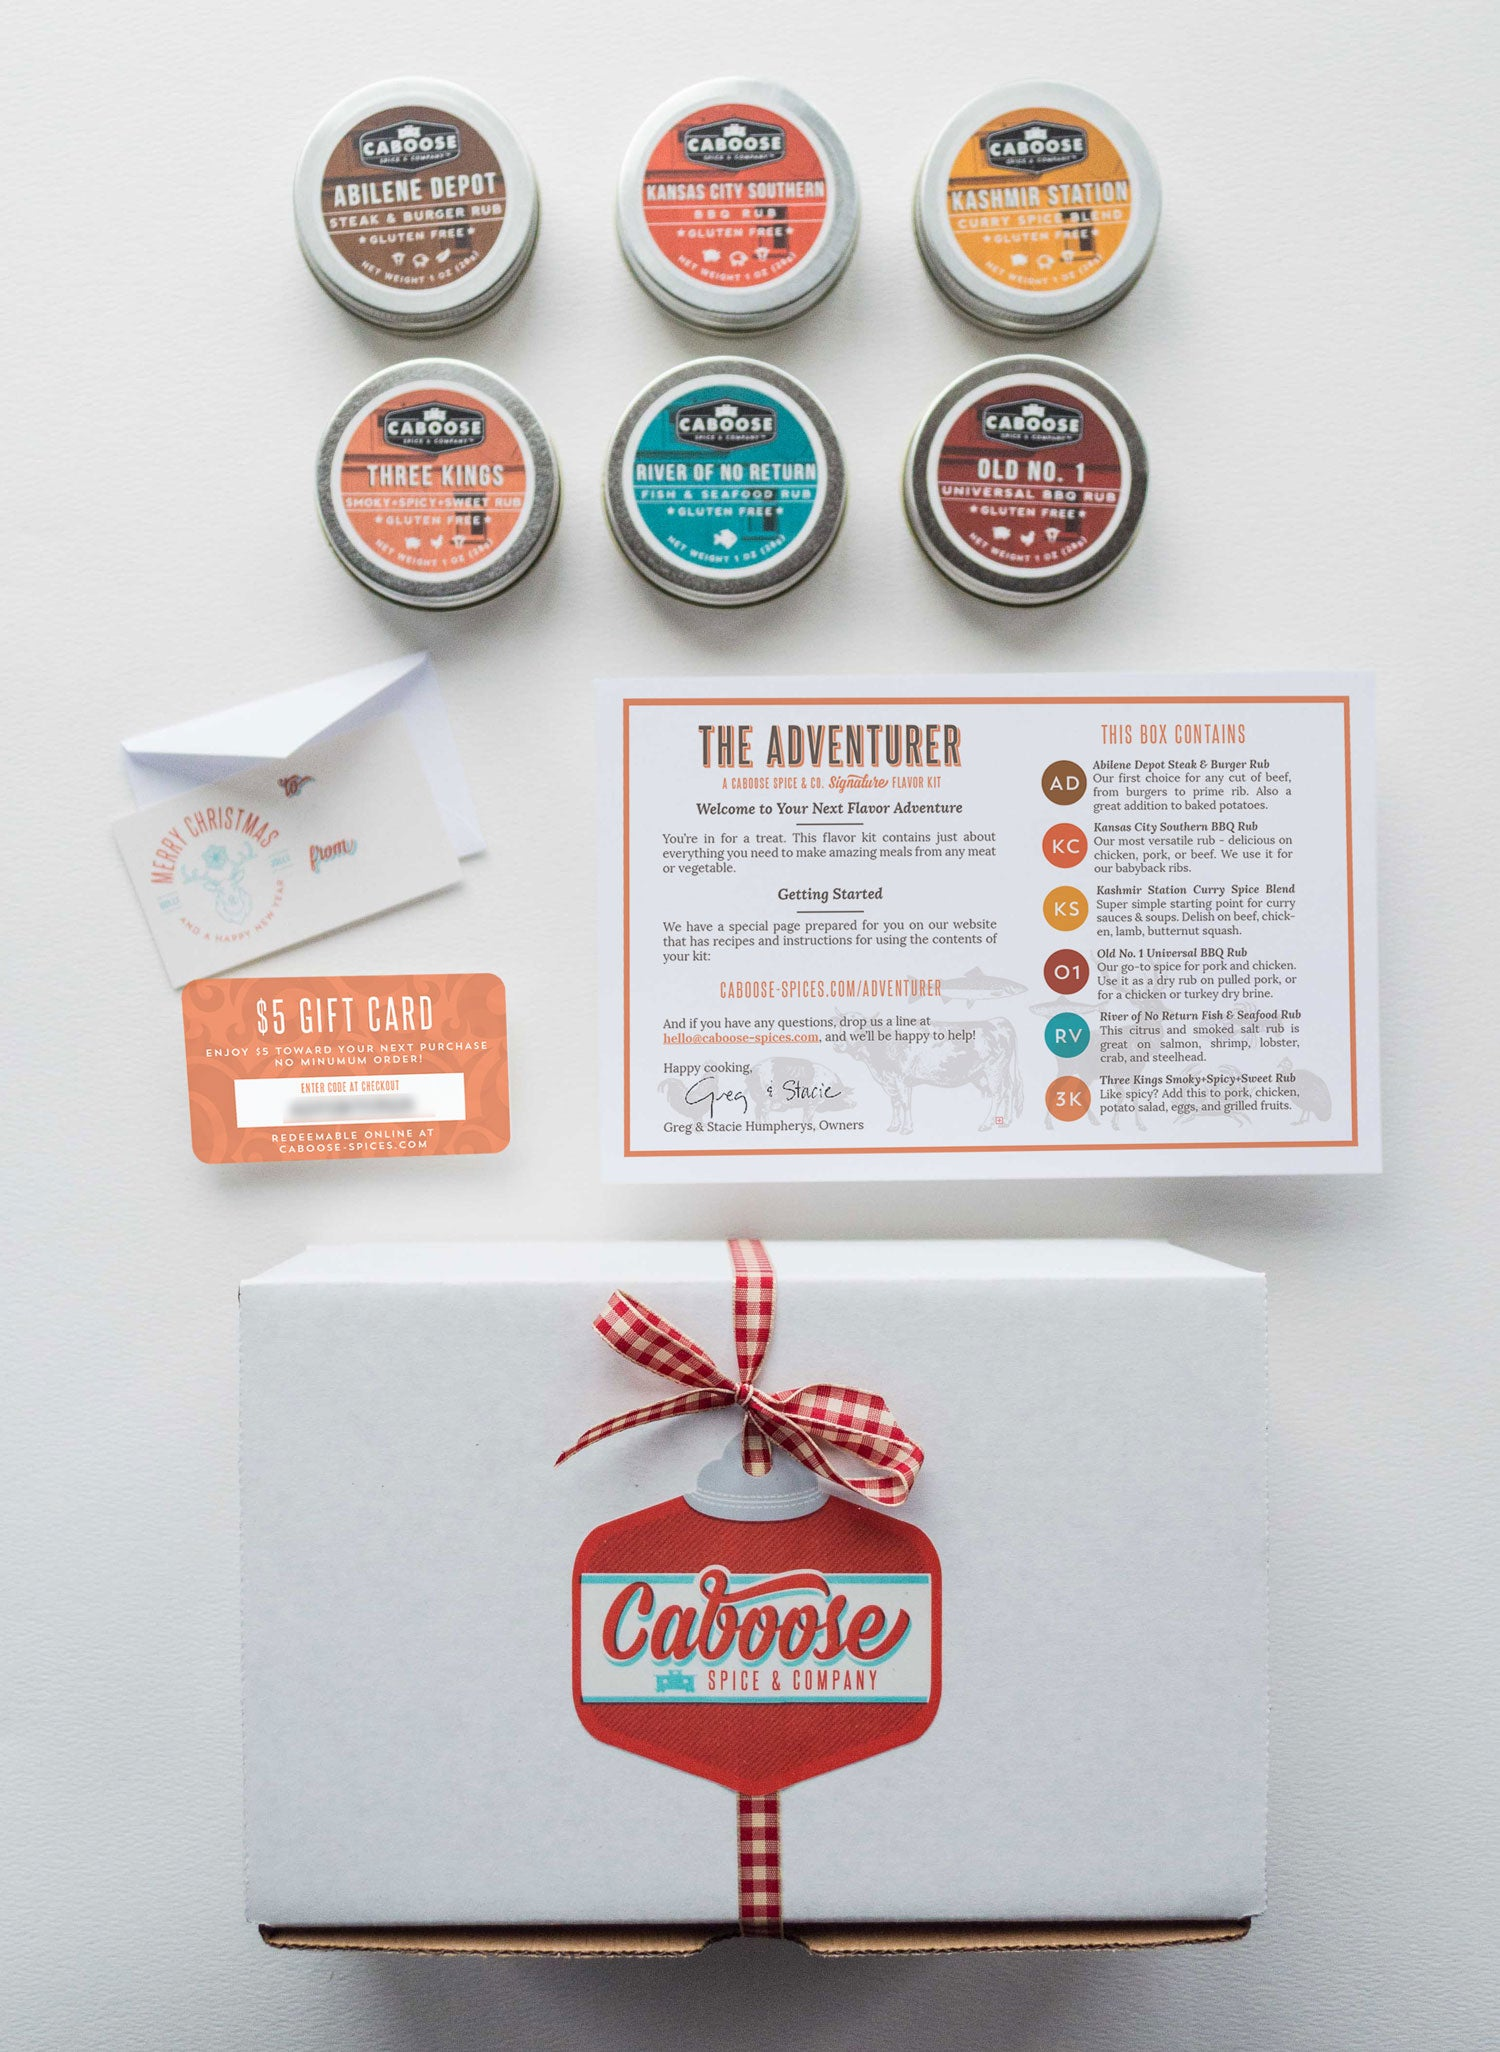 Meet the Adventurer Flavor Kit, a perfect gift for BBQ lovers: Includes six delicious Certified Gluten-Free dry rubs. Also includes a free $5 gift card for refills, gift tag & mini envelope, and tidy wrapping. Comes ready to put under the tree!